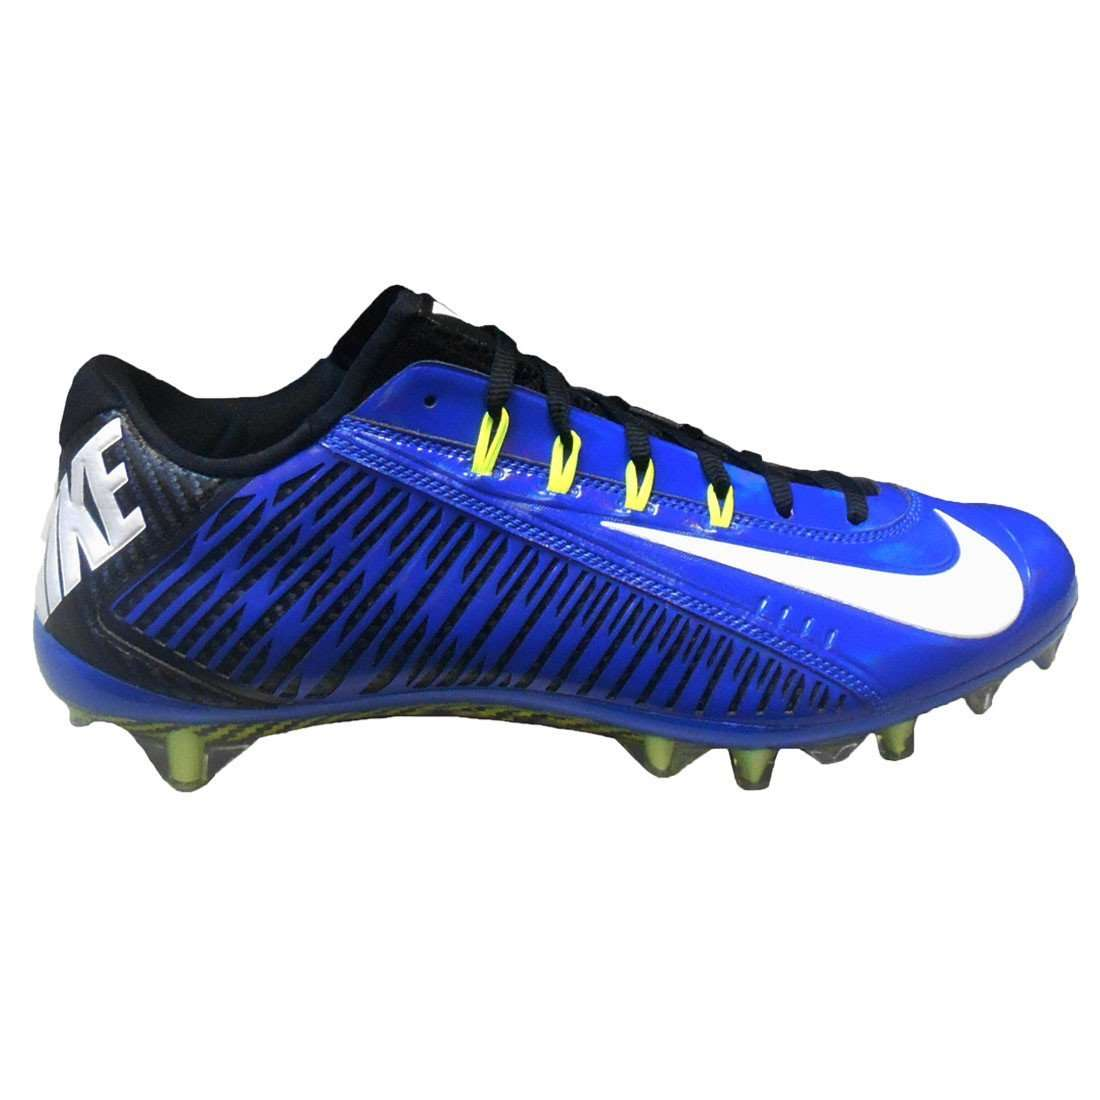 125072bc18f9 Nike Vapor Carbon Elite TD 2014 | Nike Vapor Carbon Elite Cleats ...